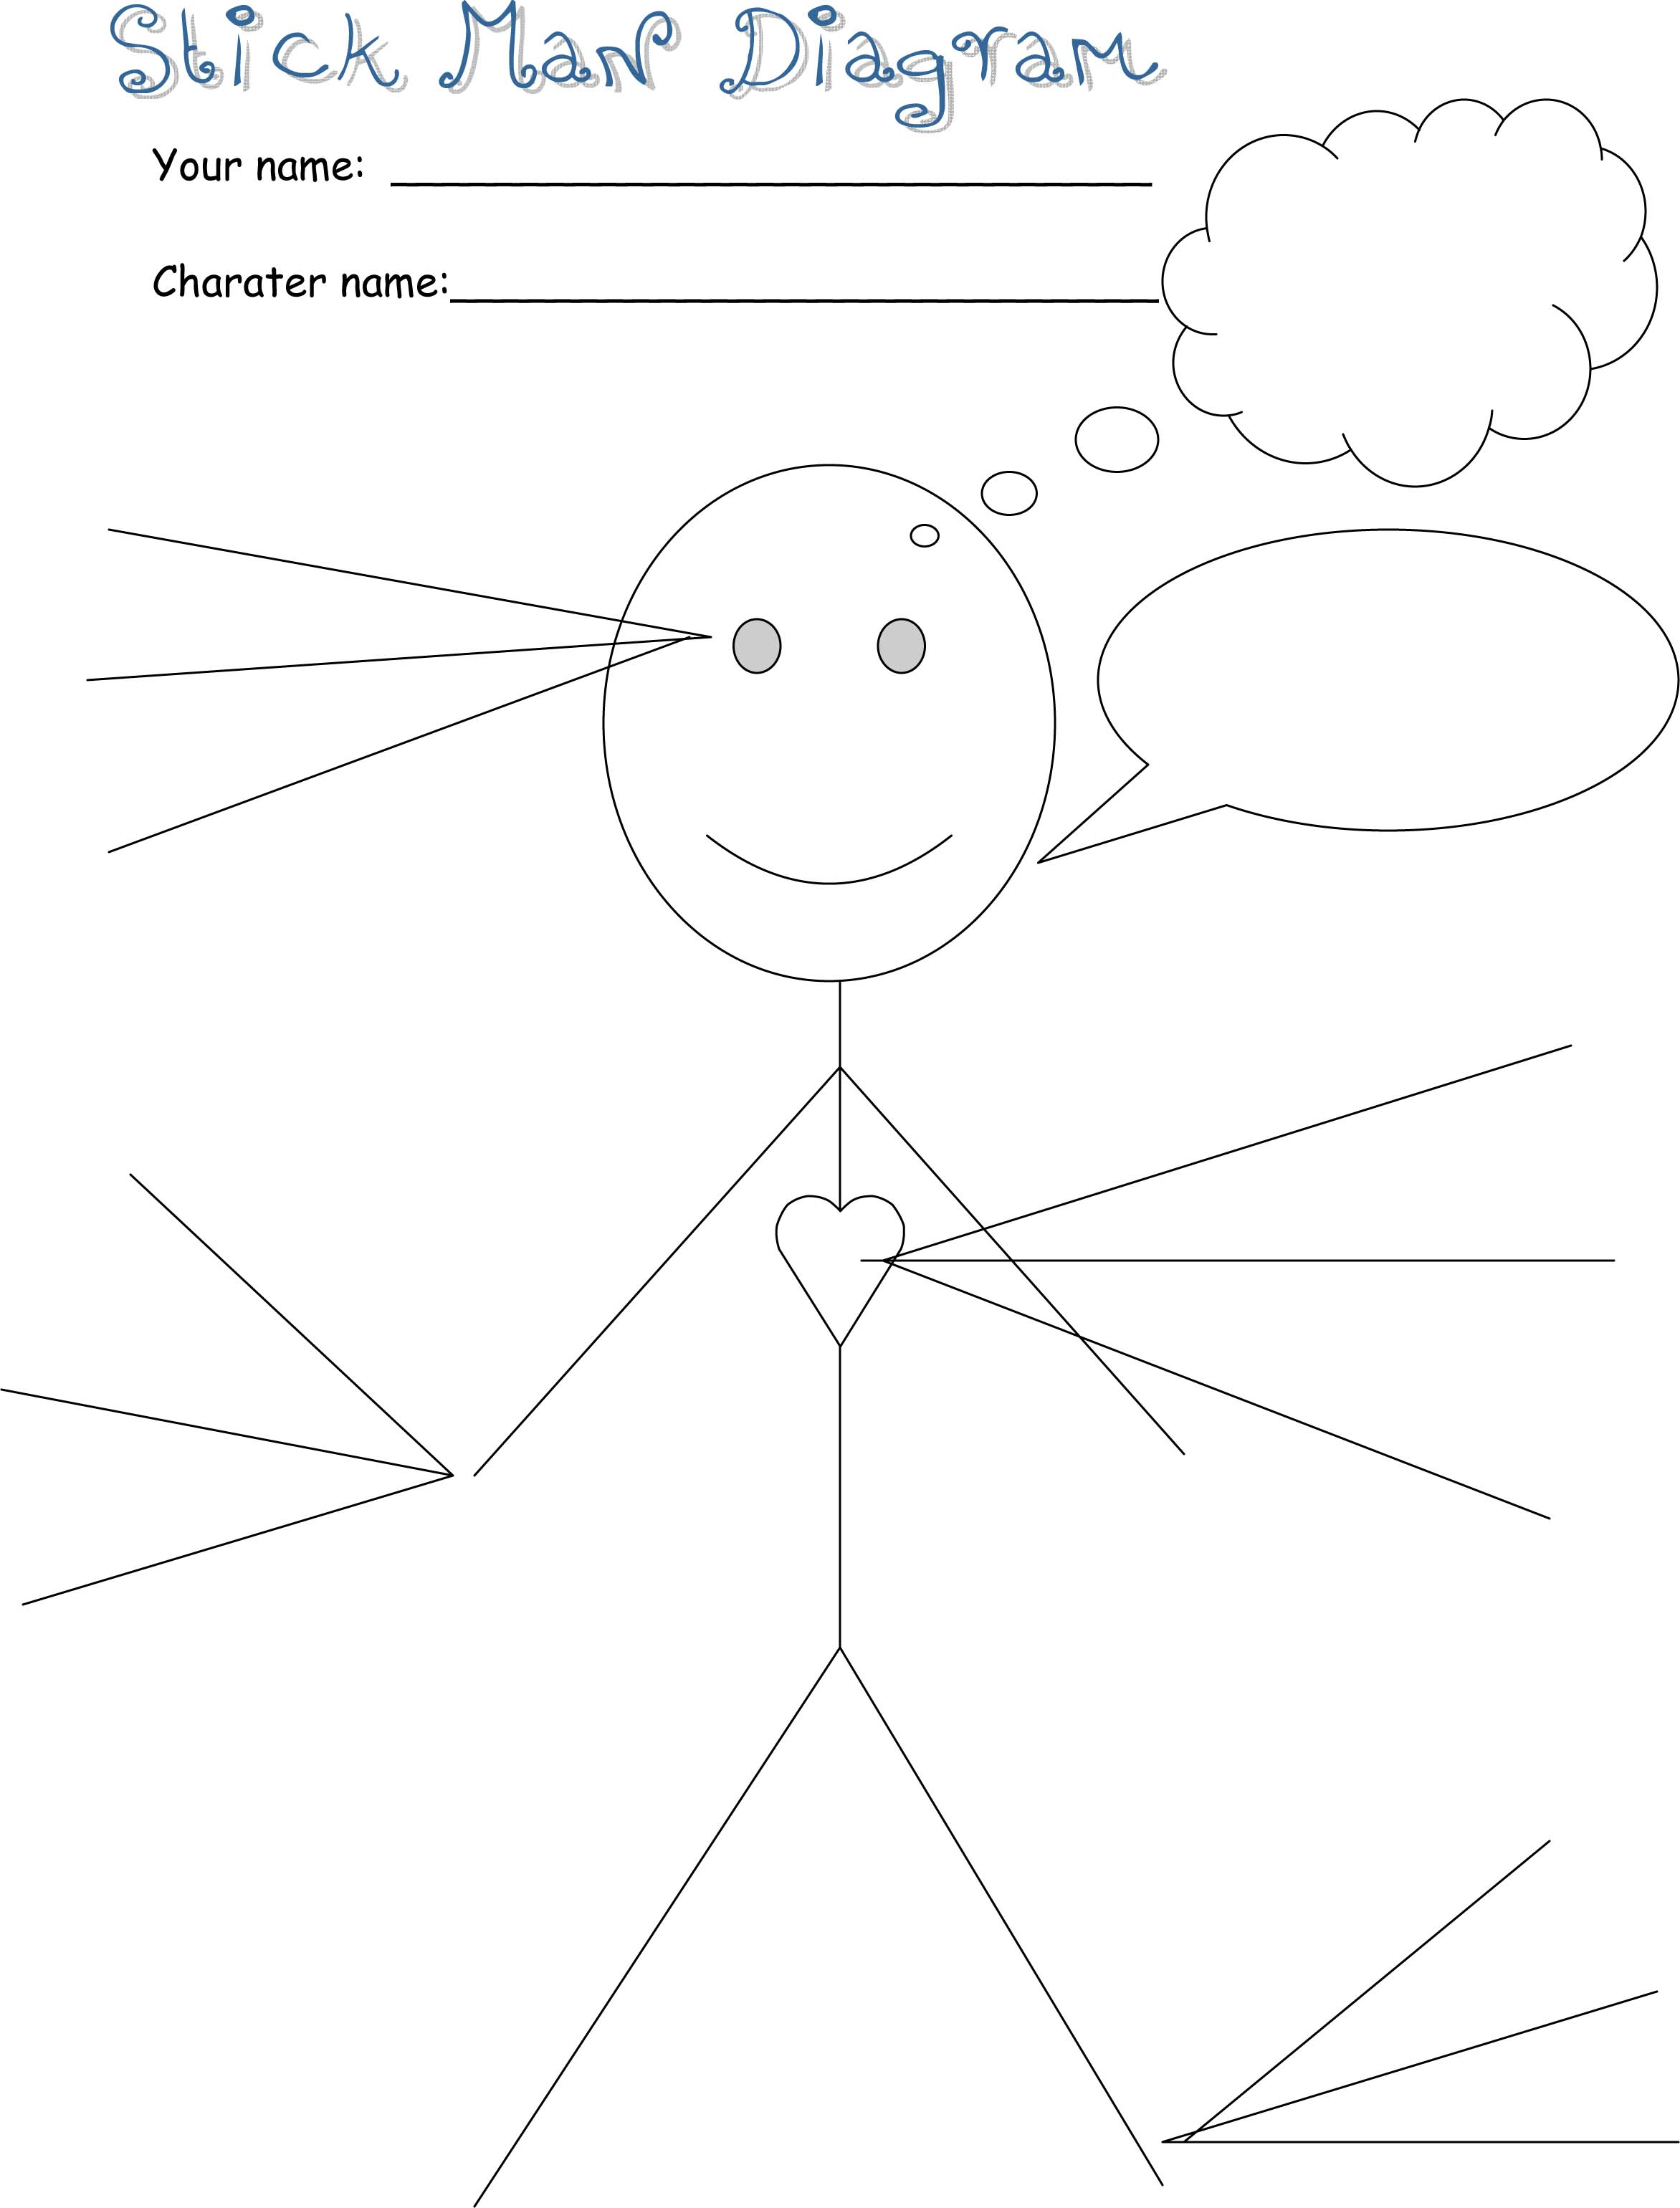 columbus ship diagram diy dual battery system graphic organizers: stick man to the rescue! | a learning experience